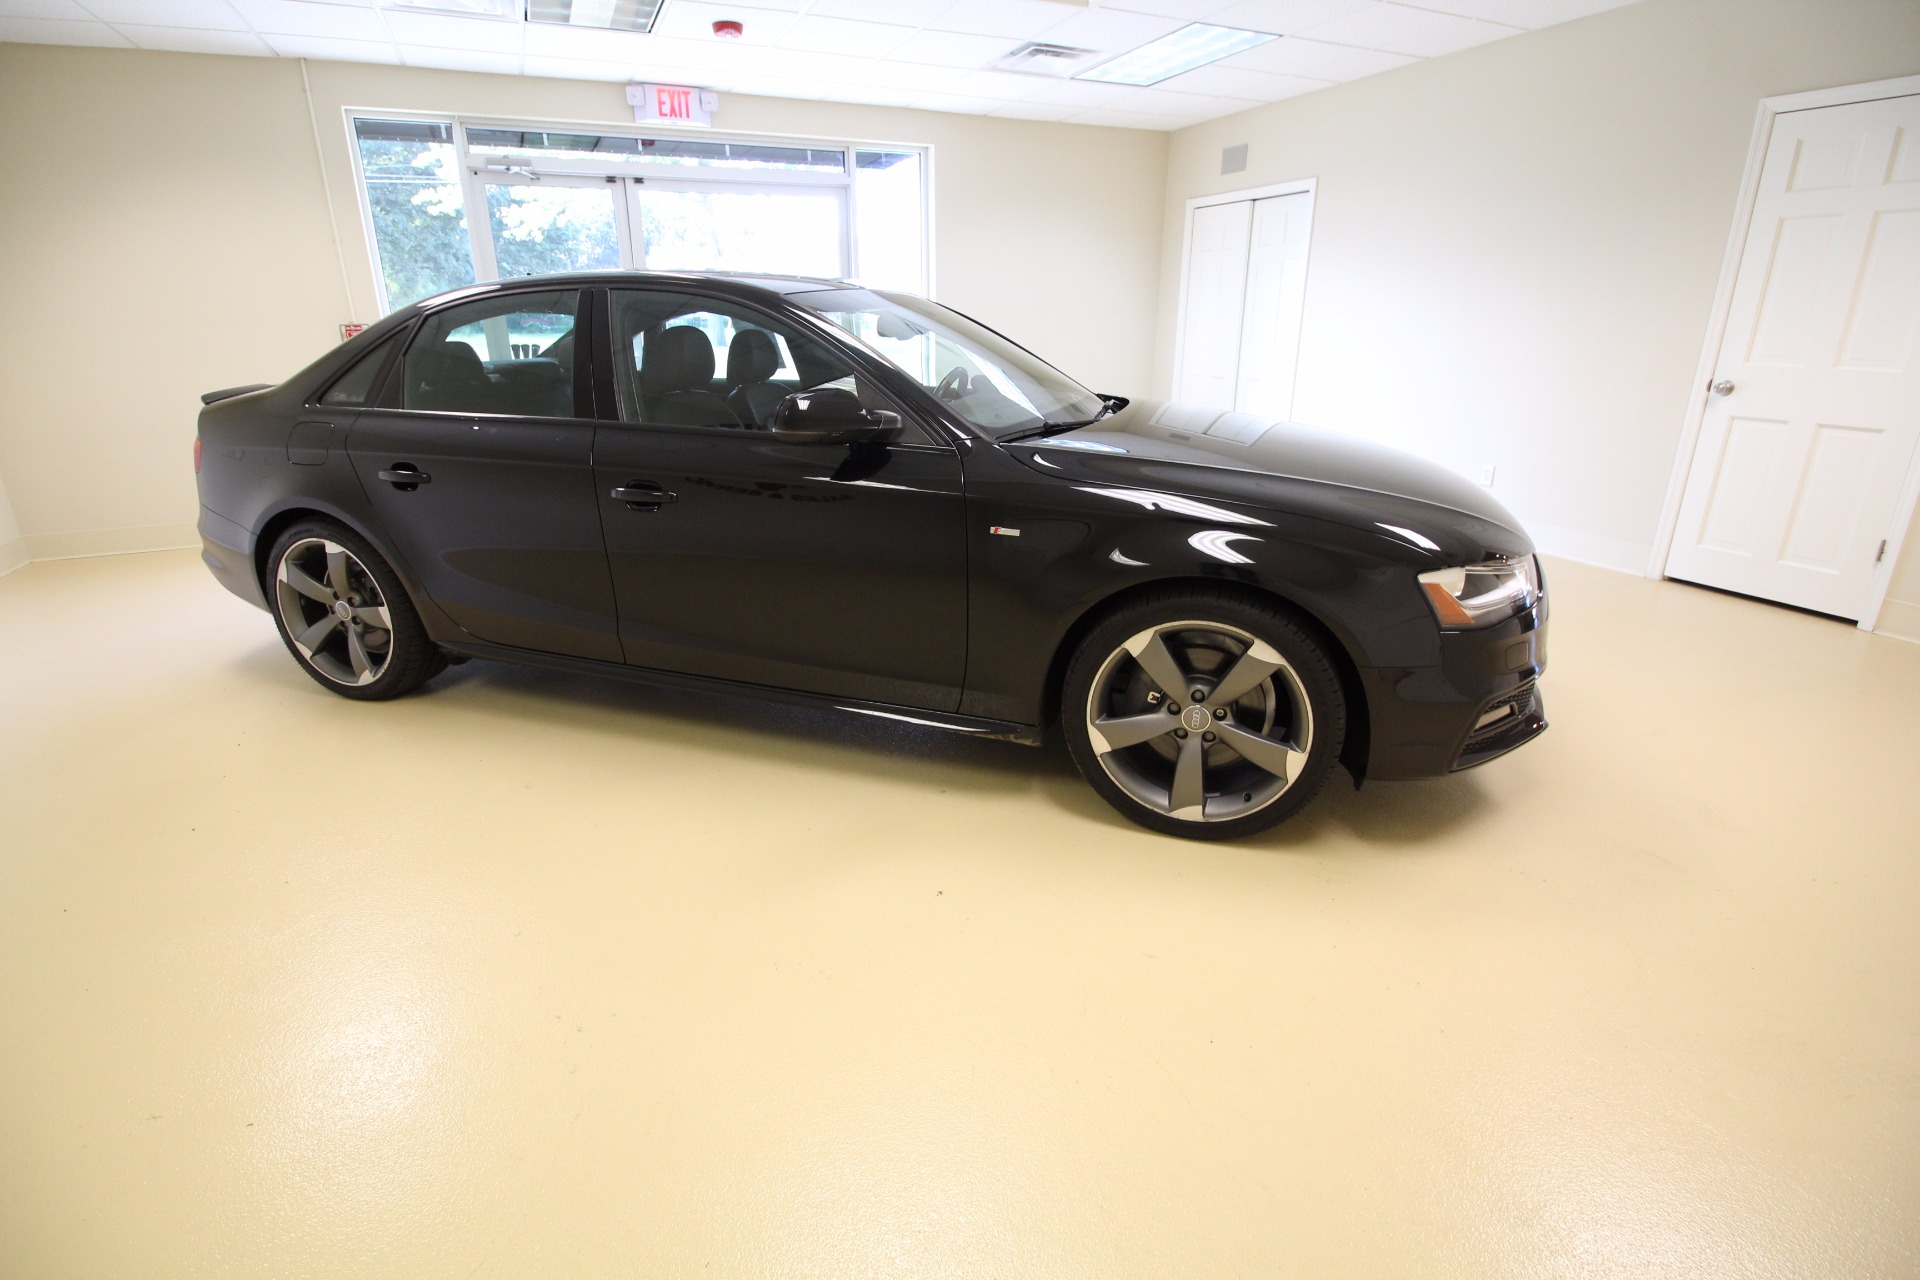 2015 audi a4 2 0t quattro premium plus manual stock 17190 for sale near albany ny ny audi. Black Bedroom Furniture Sets. Home Design Ideas